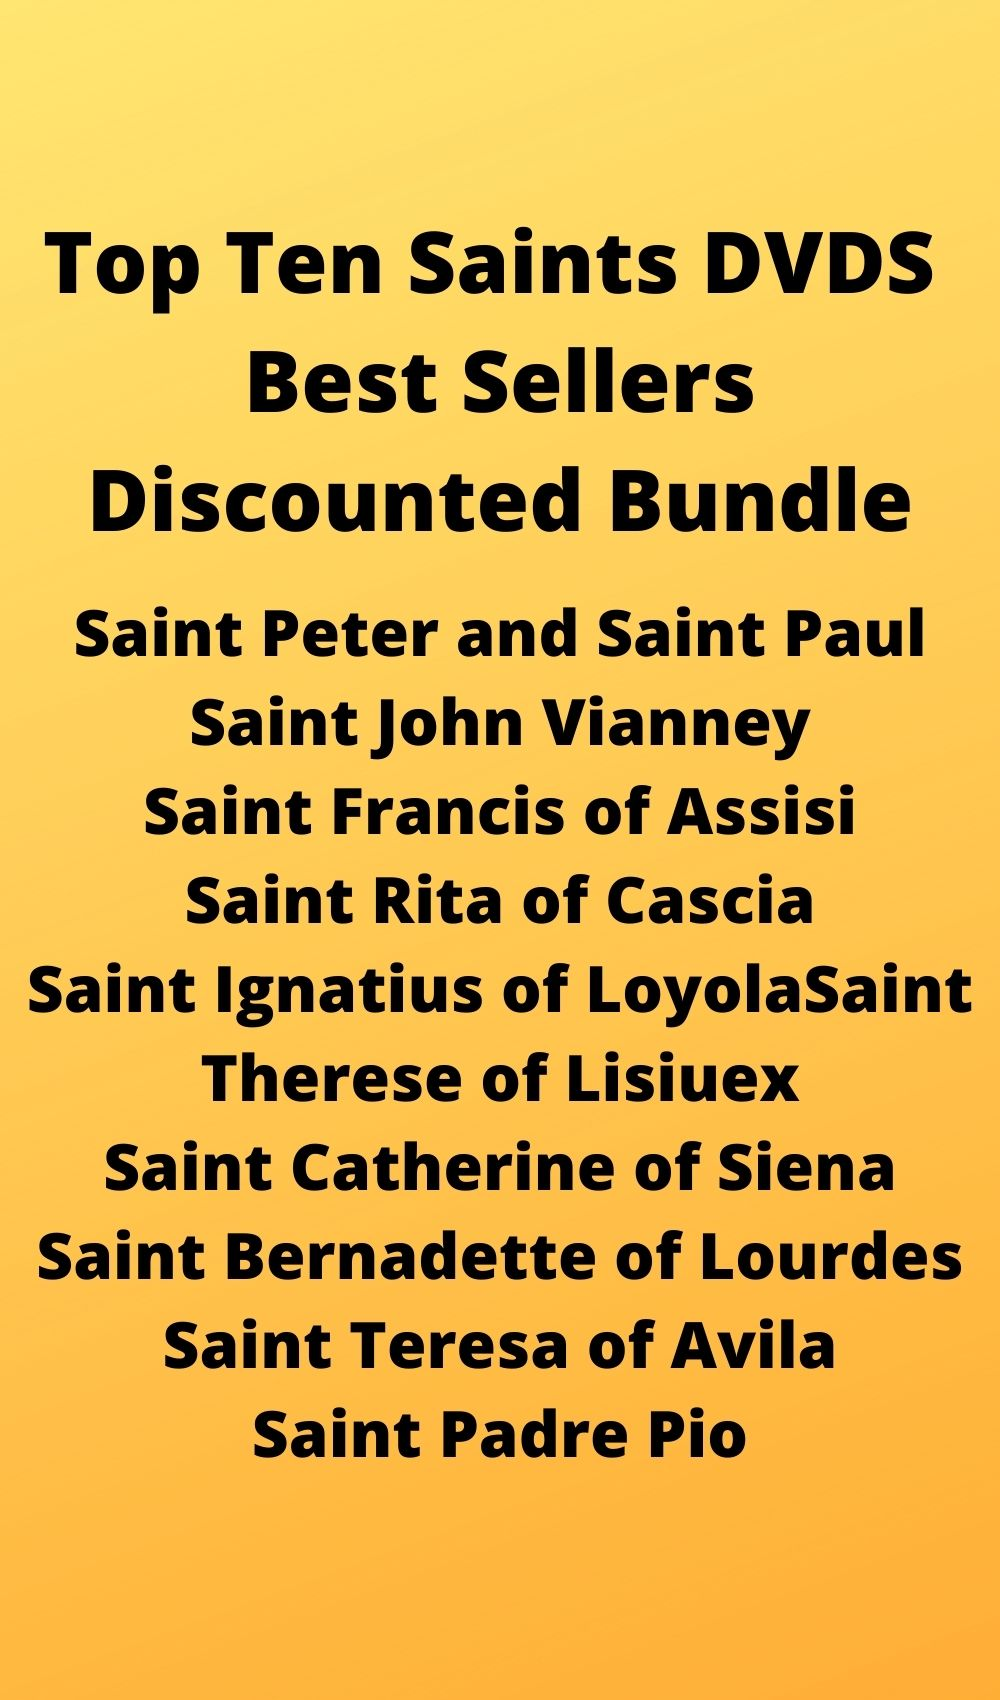 Top Ten Sai nts DVDS Best Sellers Discounted Bundle - Bob and Penny Lord